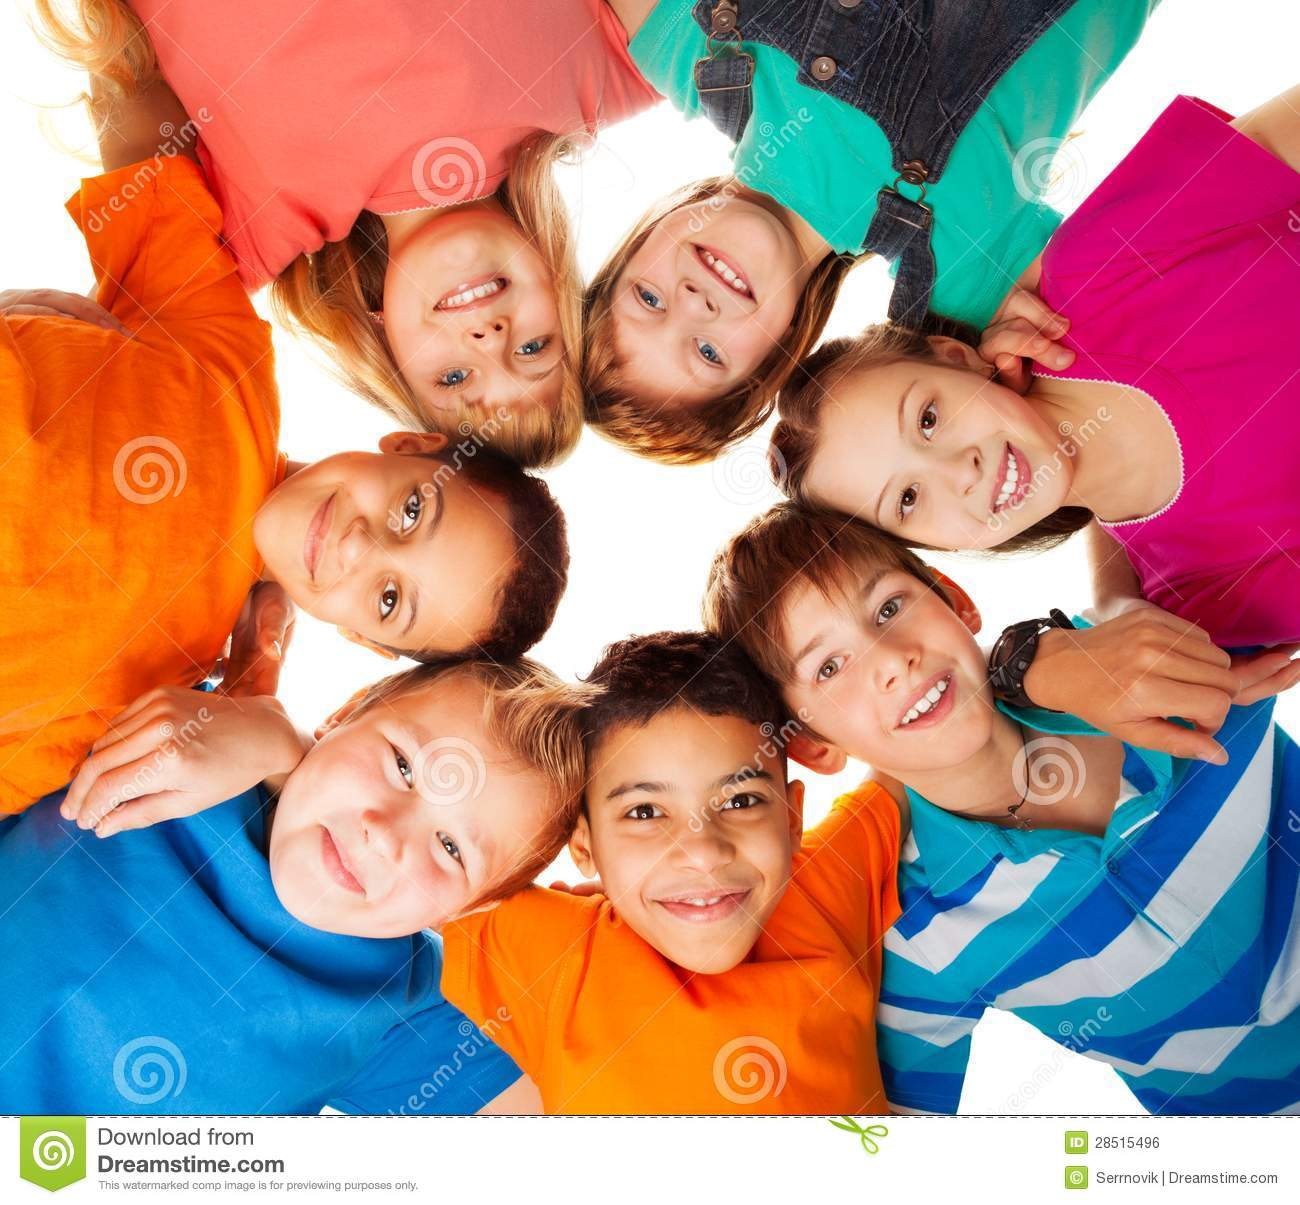 Circle Of Happy Kids Together Smiling Royalty Free Stock Image ...